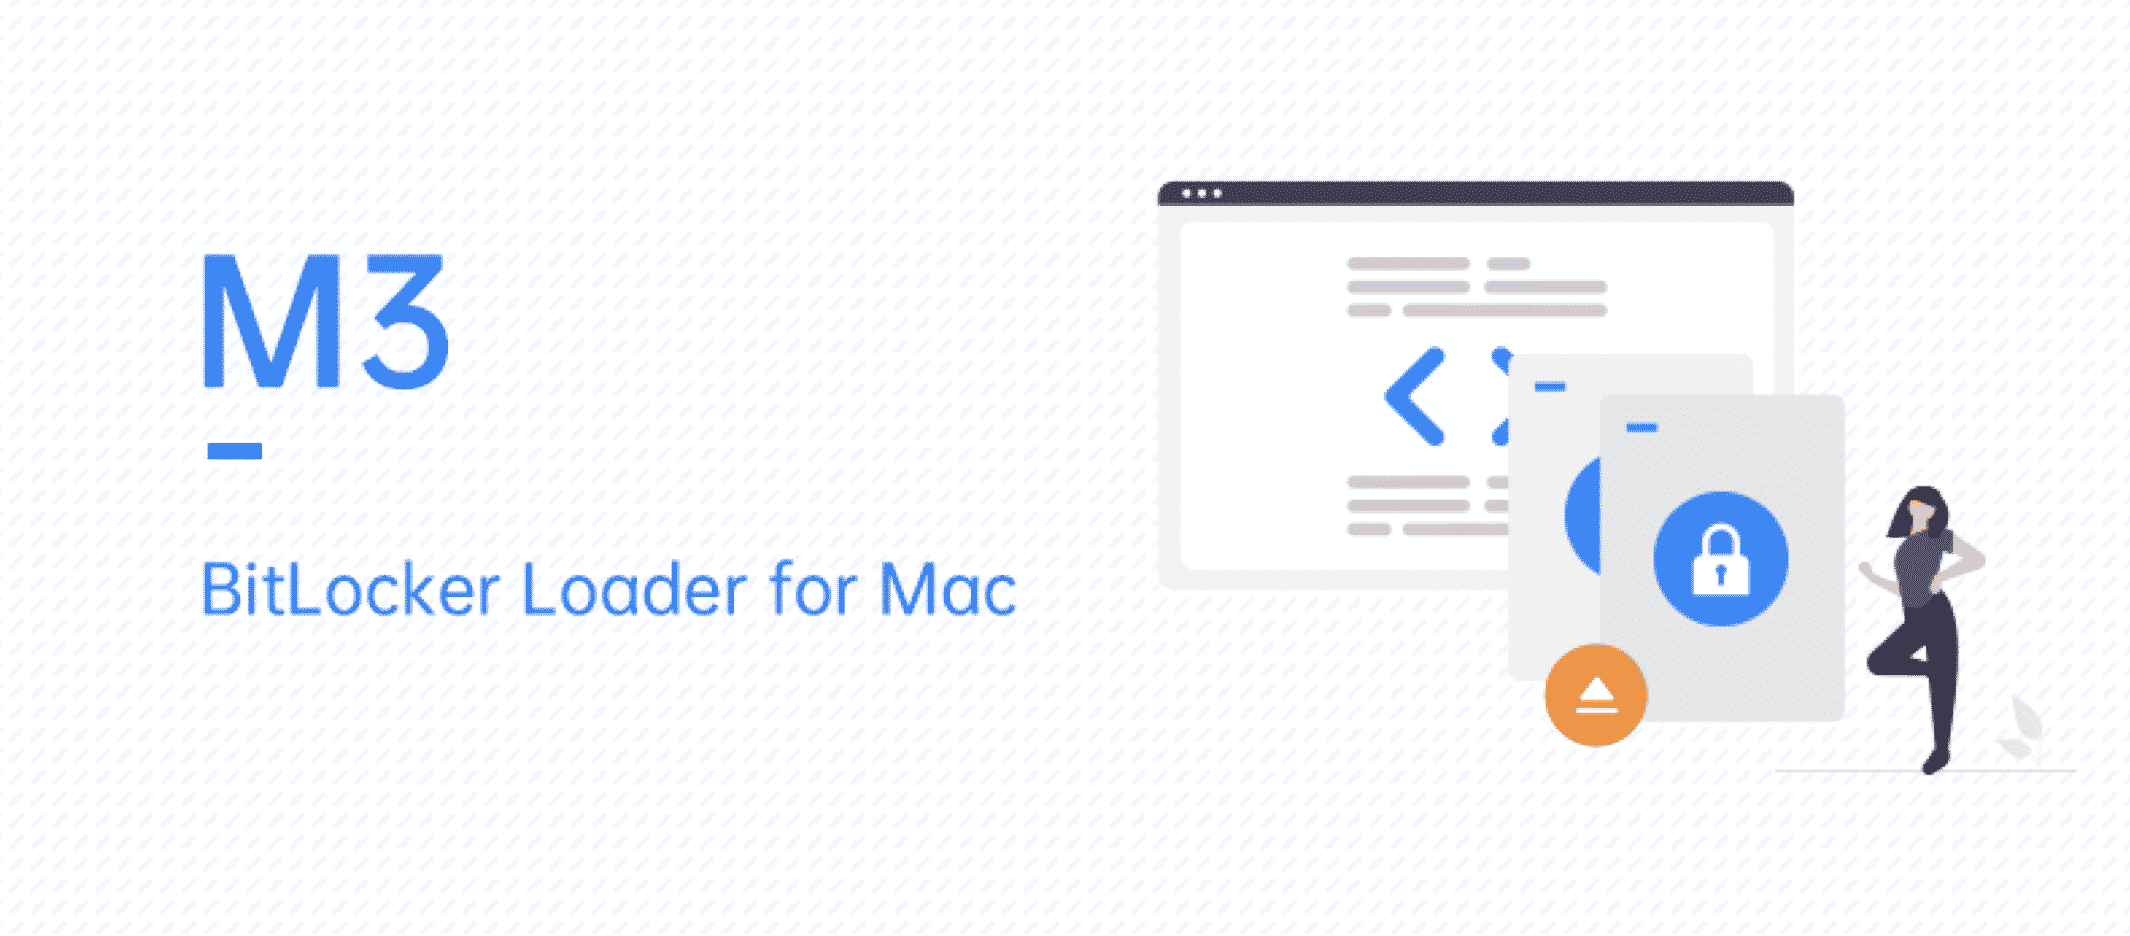 How to Open/Unlock BitLocker Encrypted Drive on M1 Mac and macOS Big Sur?